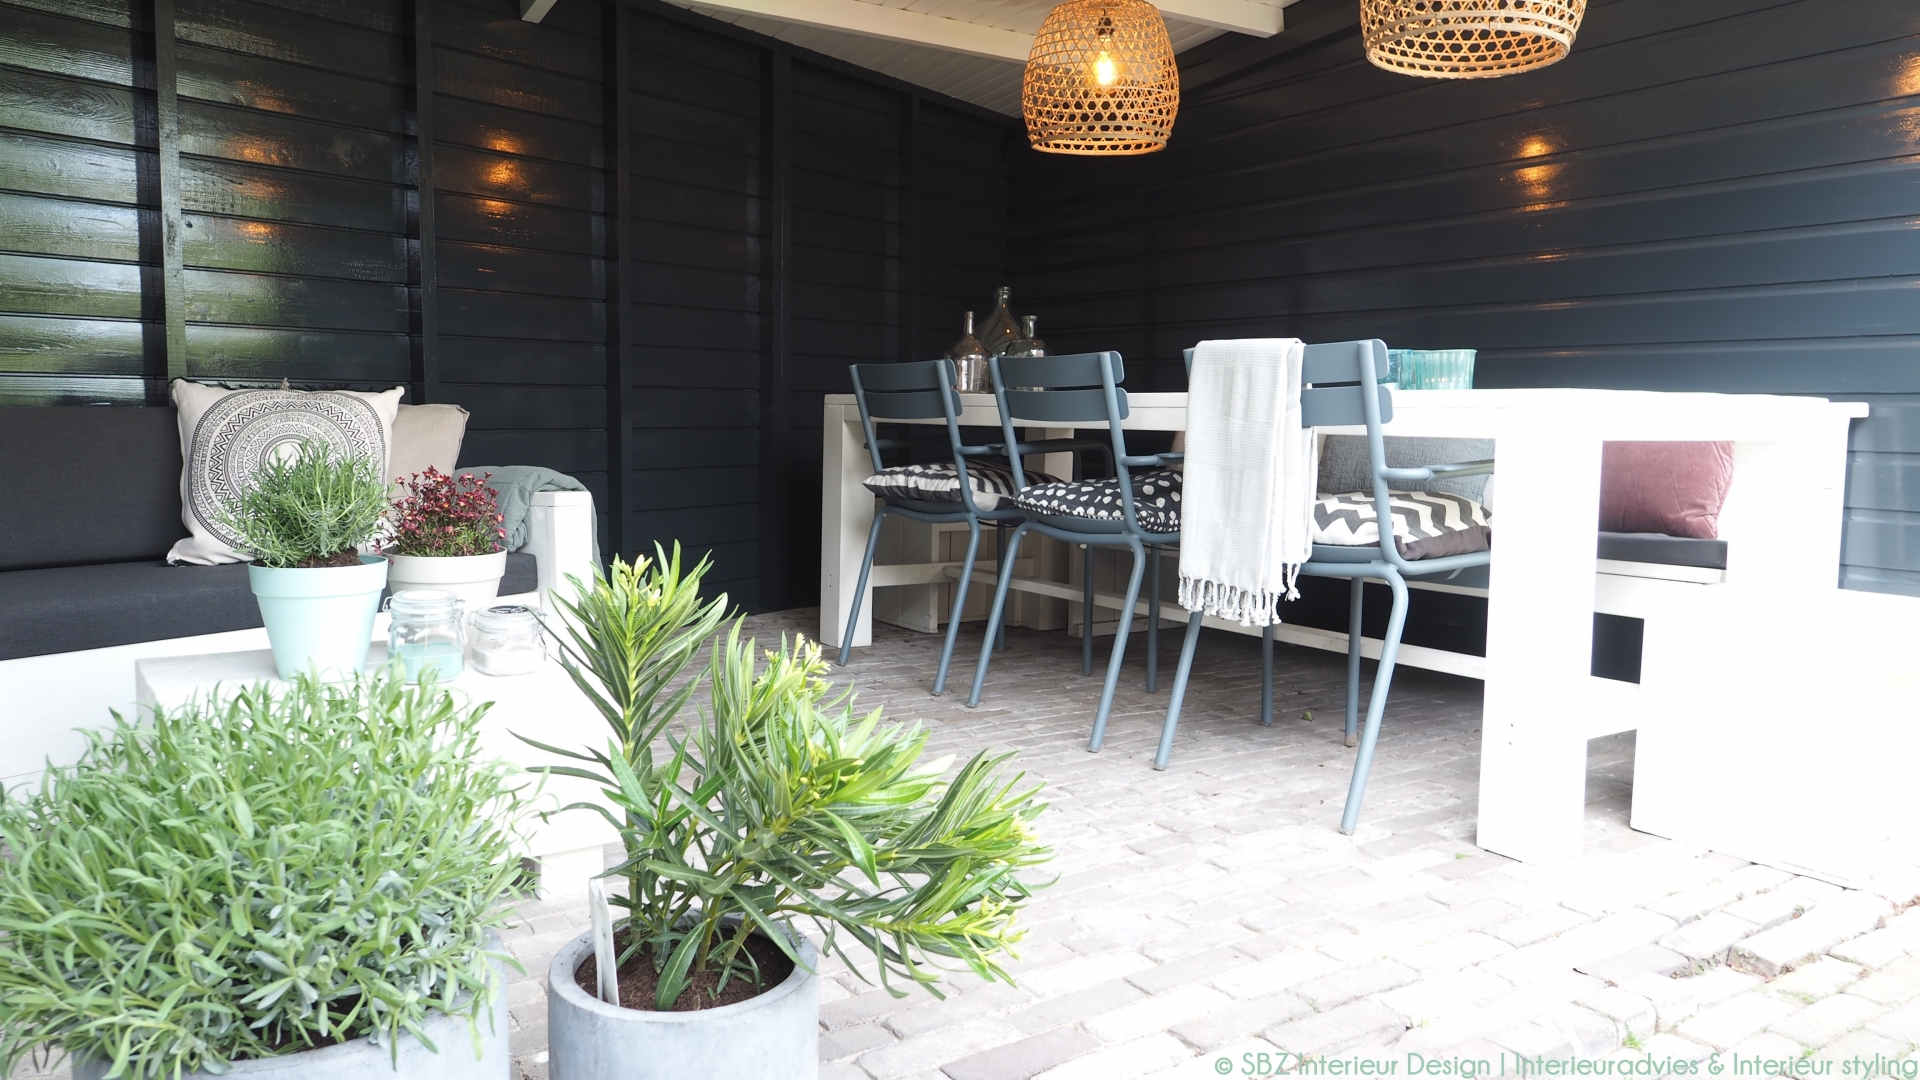 Interieur styling veranda - SBZ Interieur Design